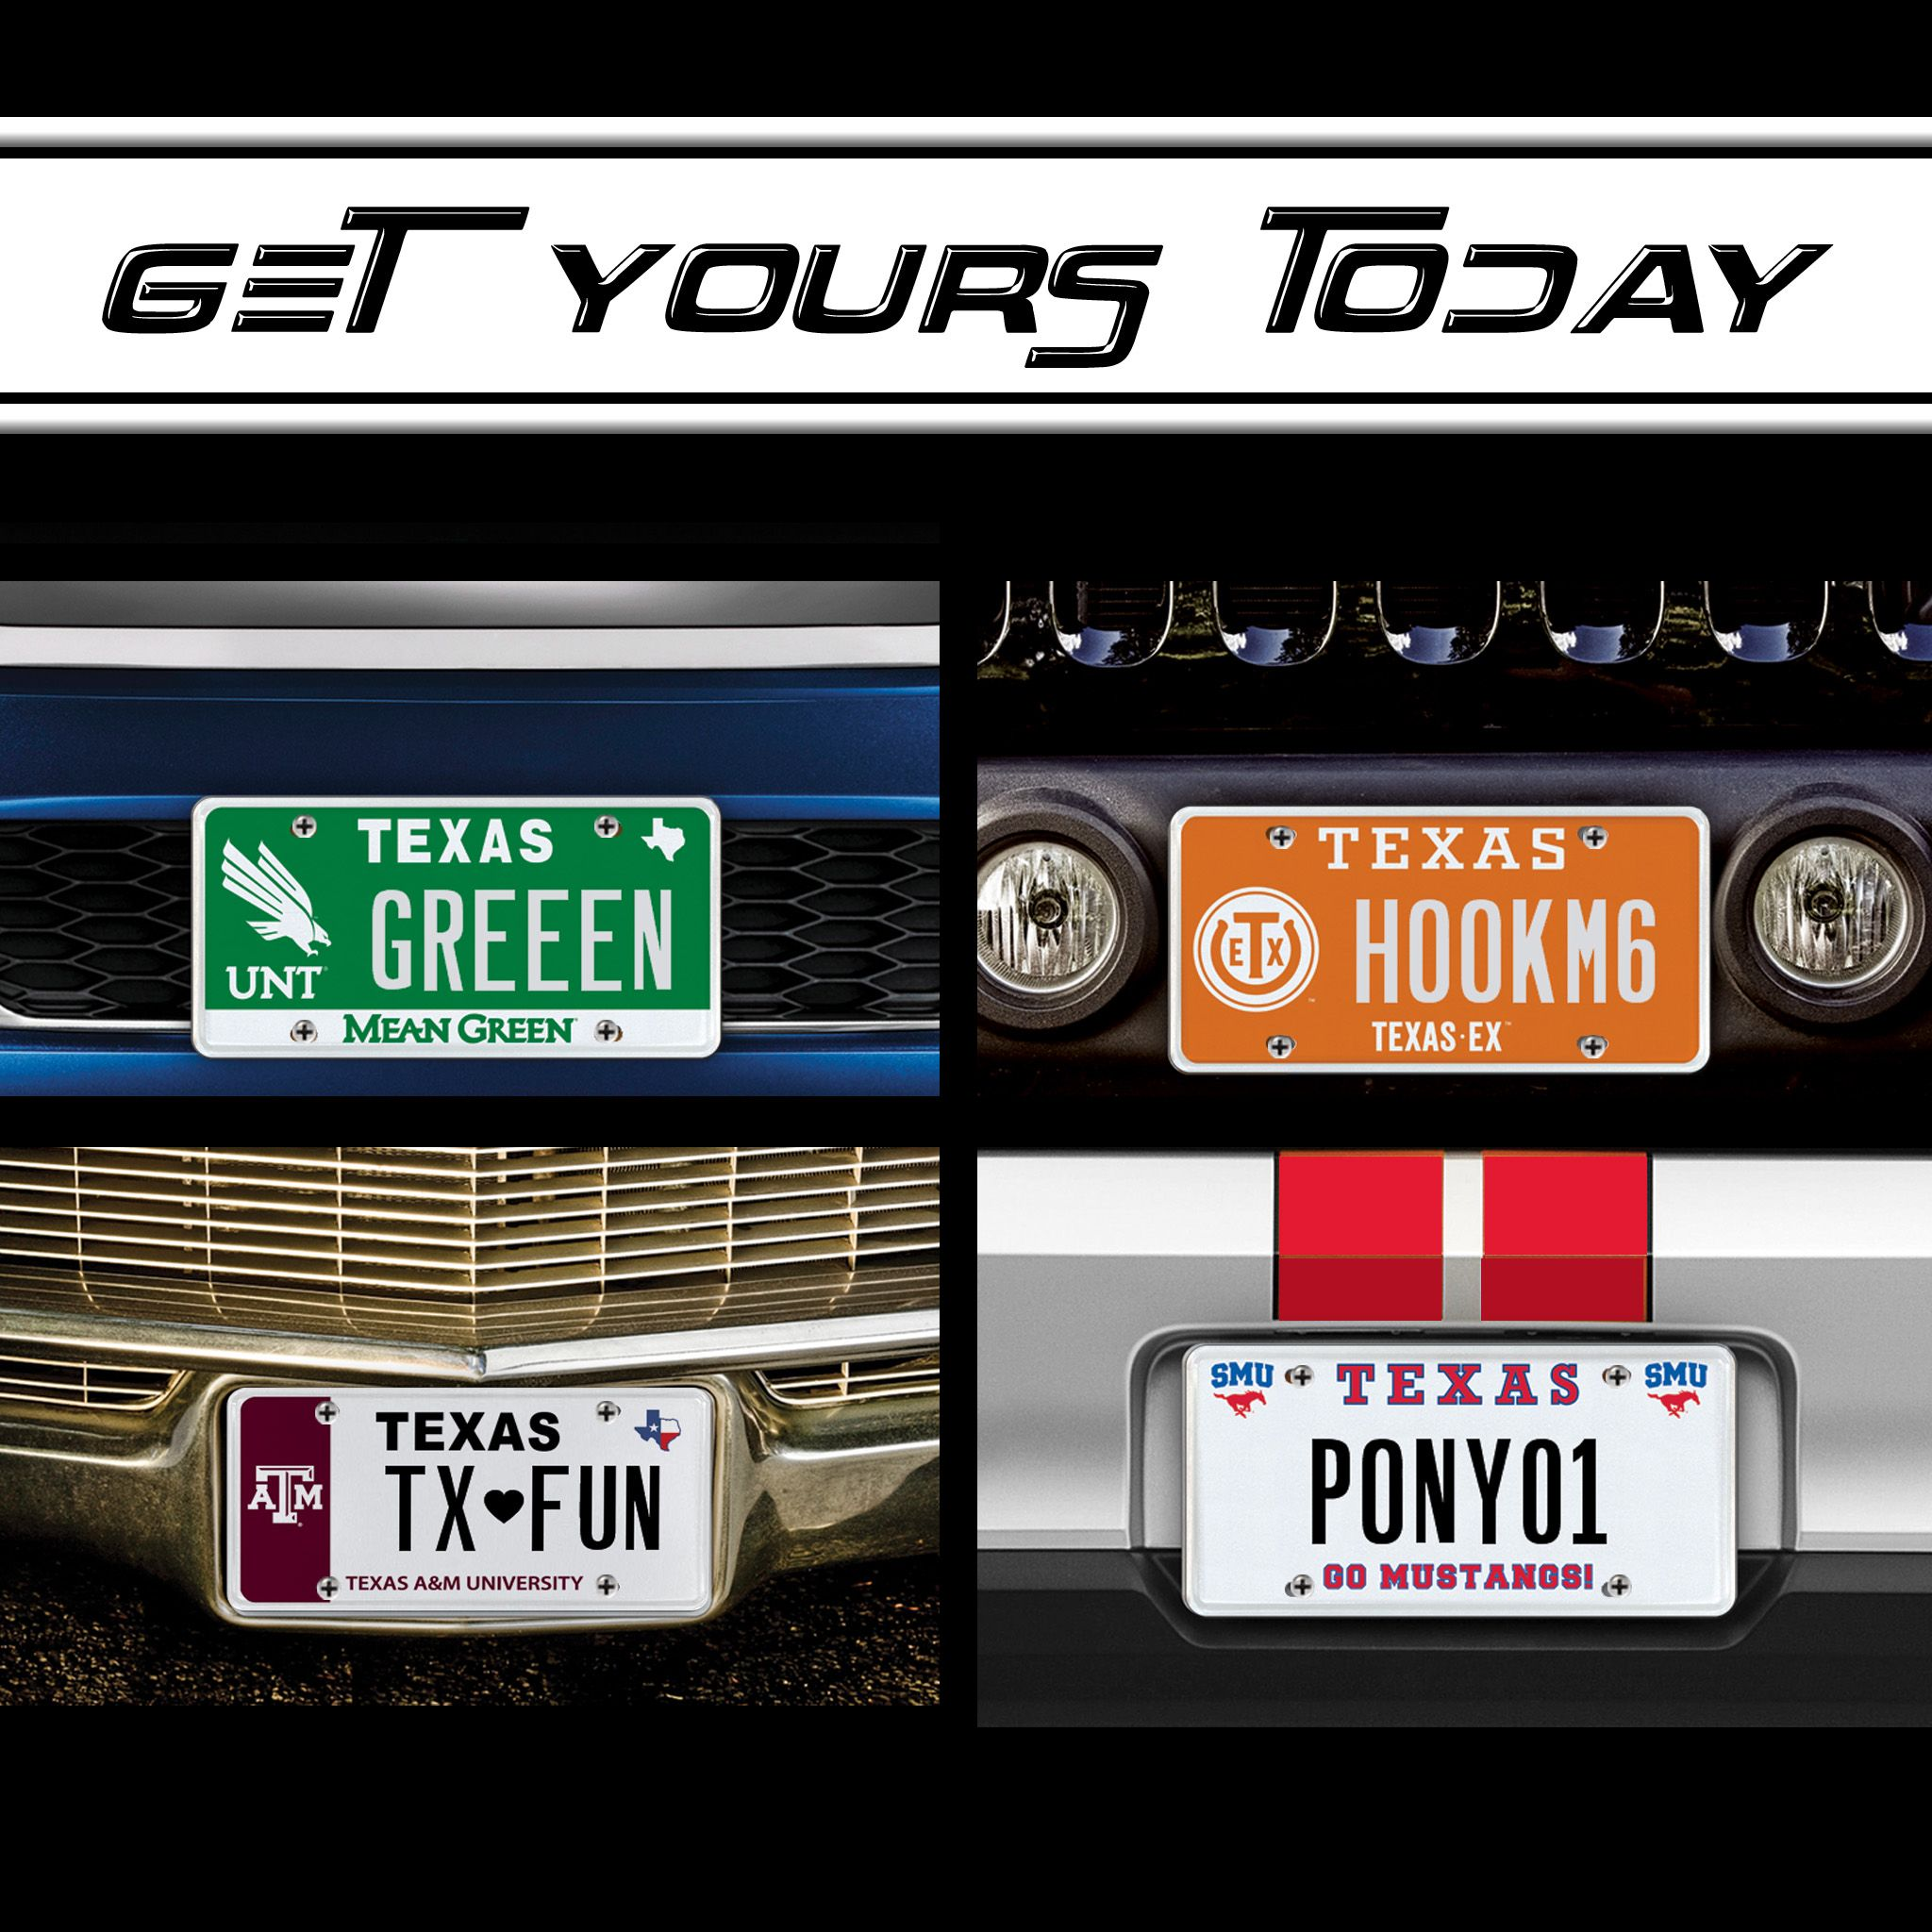 My Plates Texas >> Myplates Official Texas License Plates Starting At 55 Per Year For